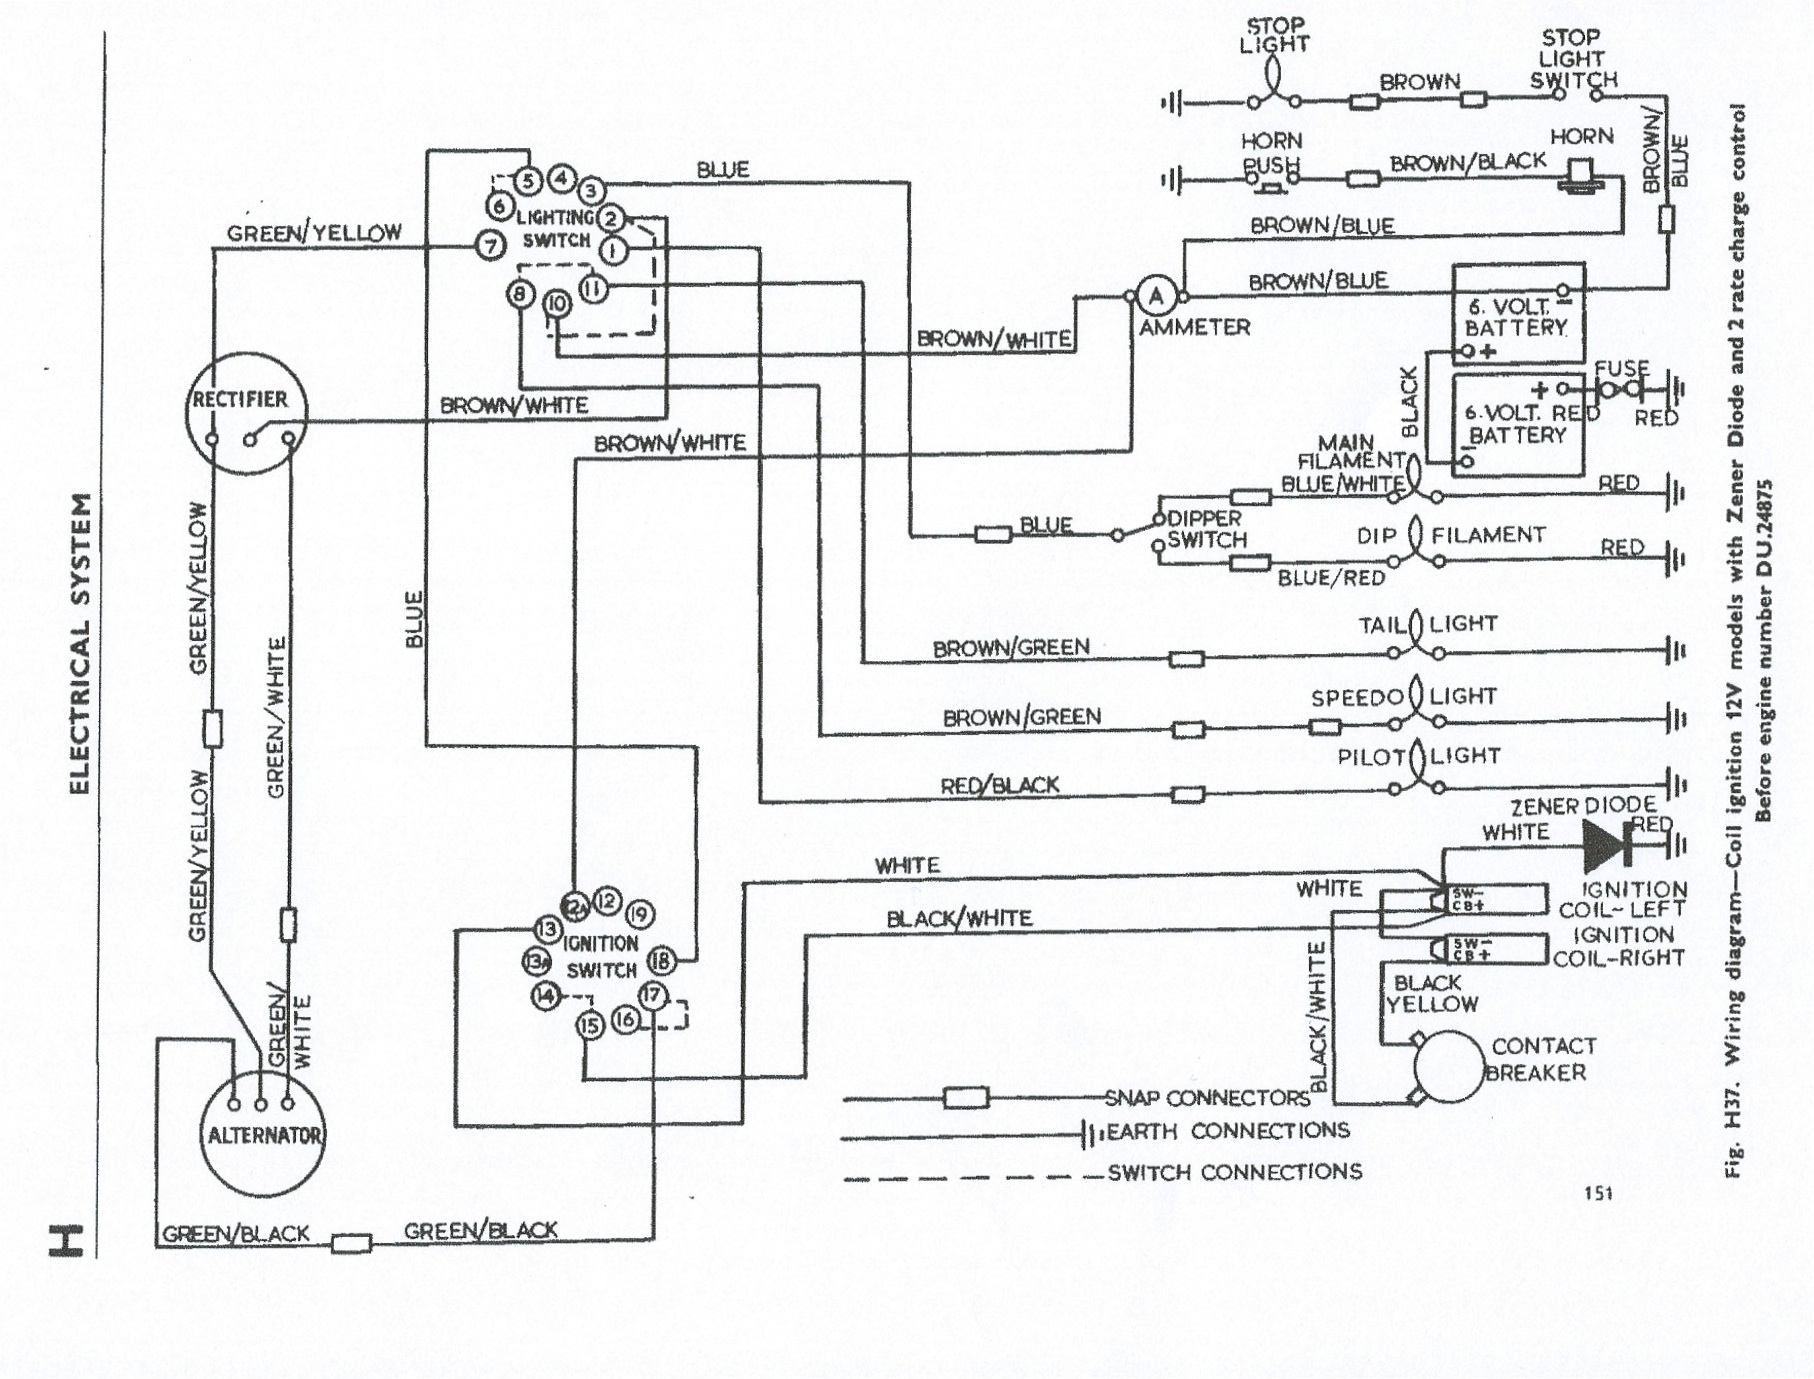 triumph bonneville wiring diagram schematic diagram electronic rh selfit co  Triumph Motorcycle Wiring Diagram Triumph Motorcycle